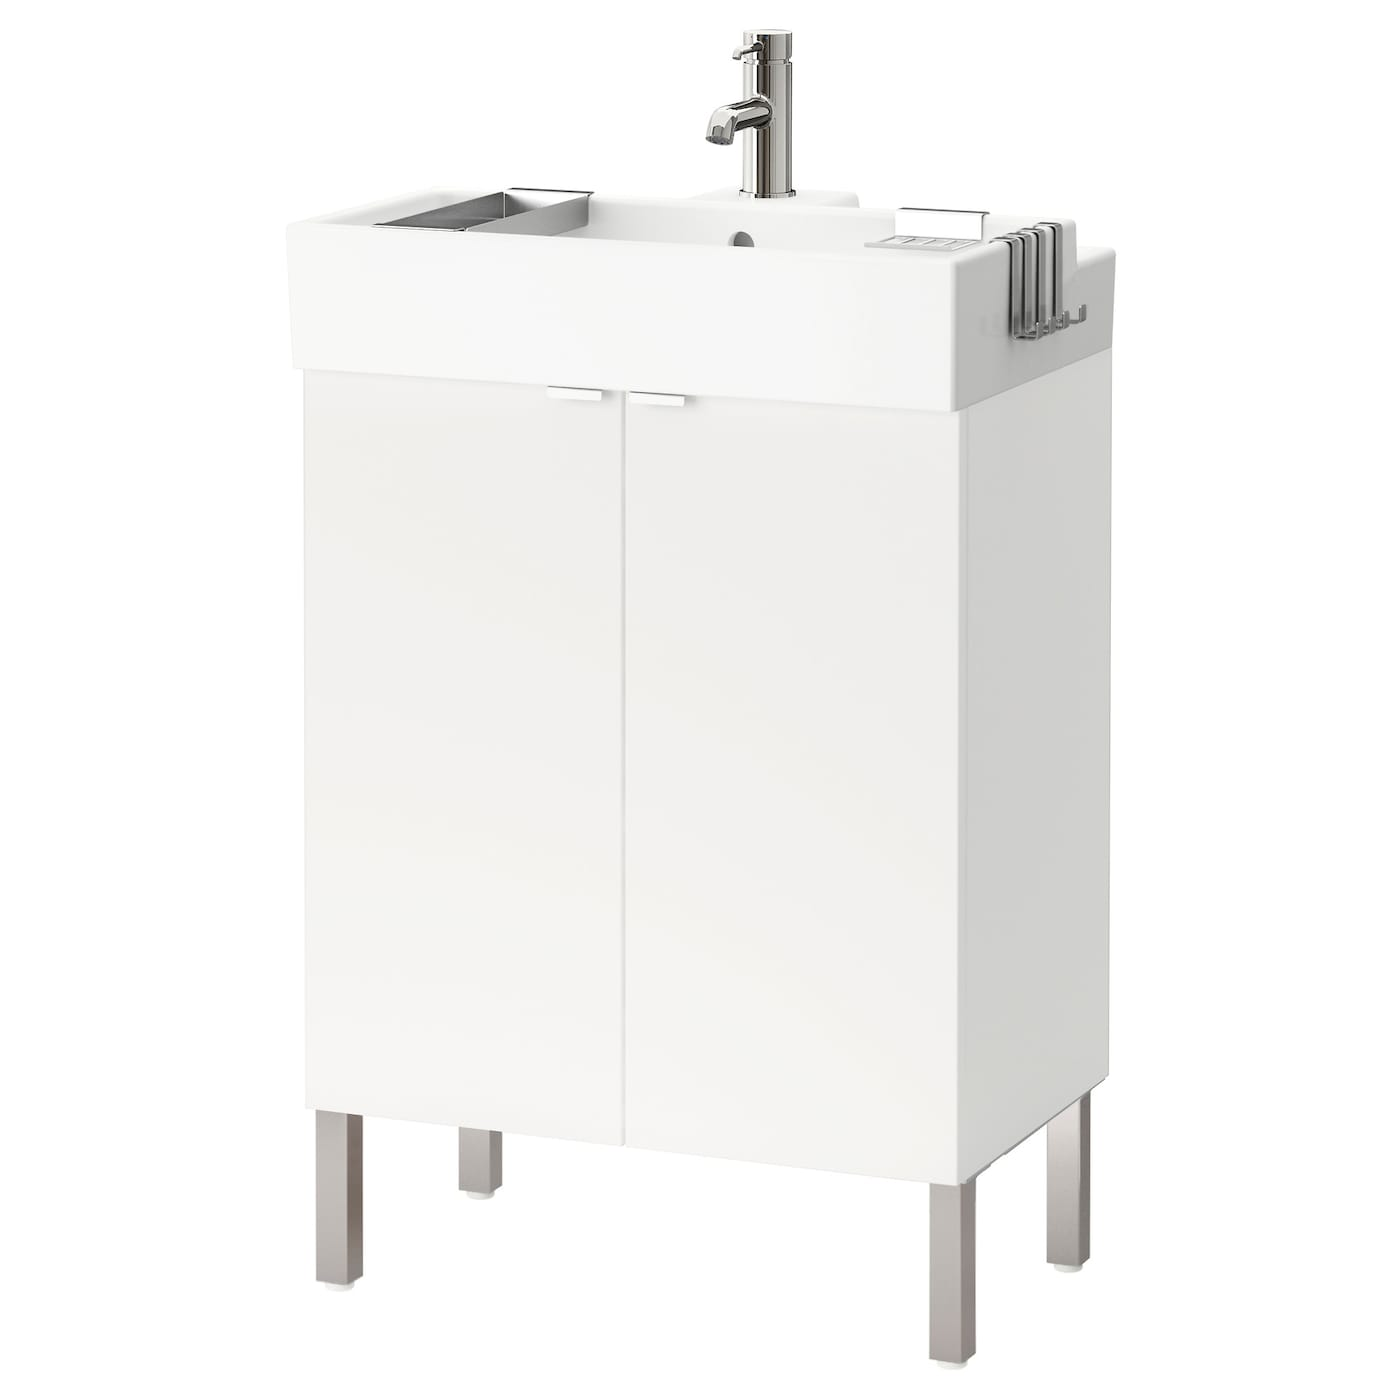 IKEA LILLÅNGEN washbasin cabinet with 2 doors